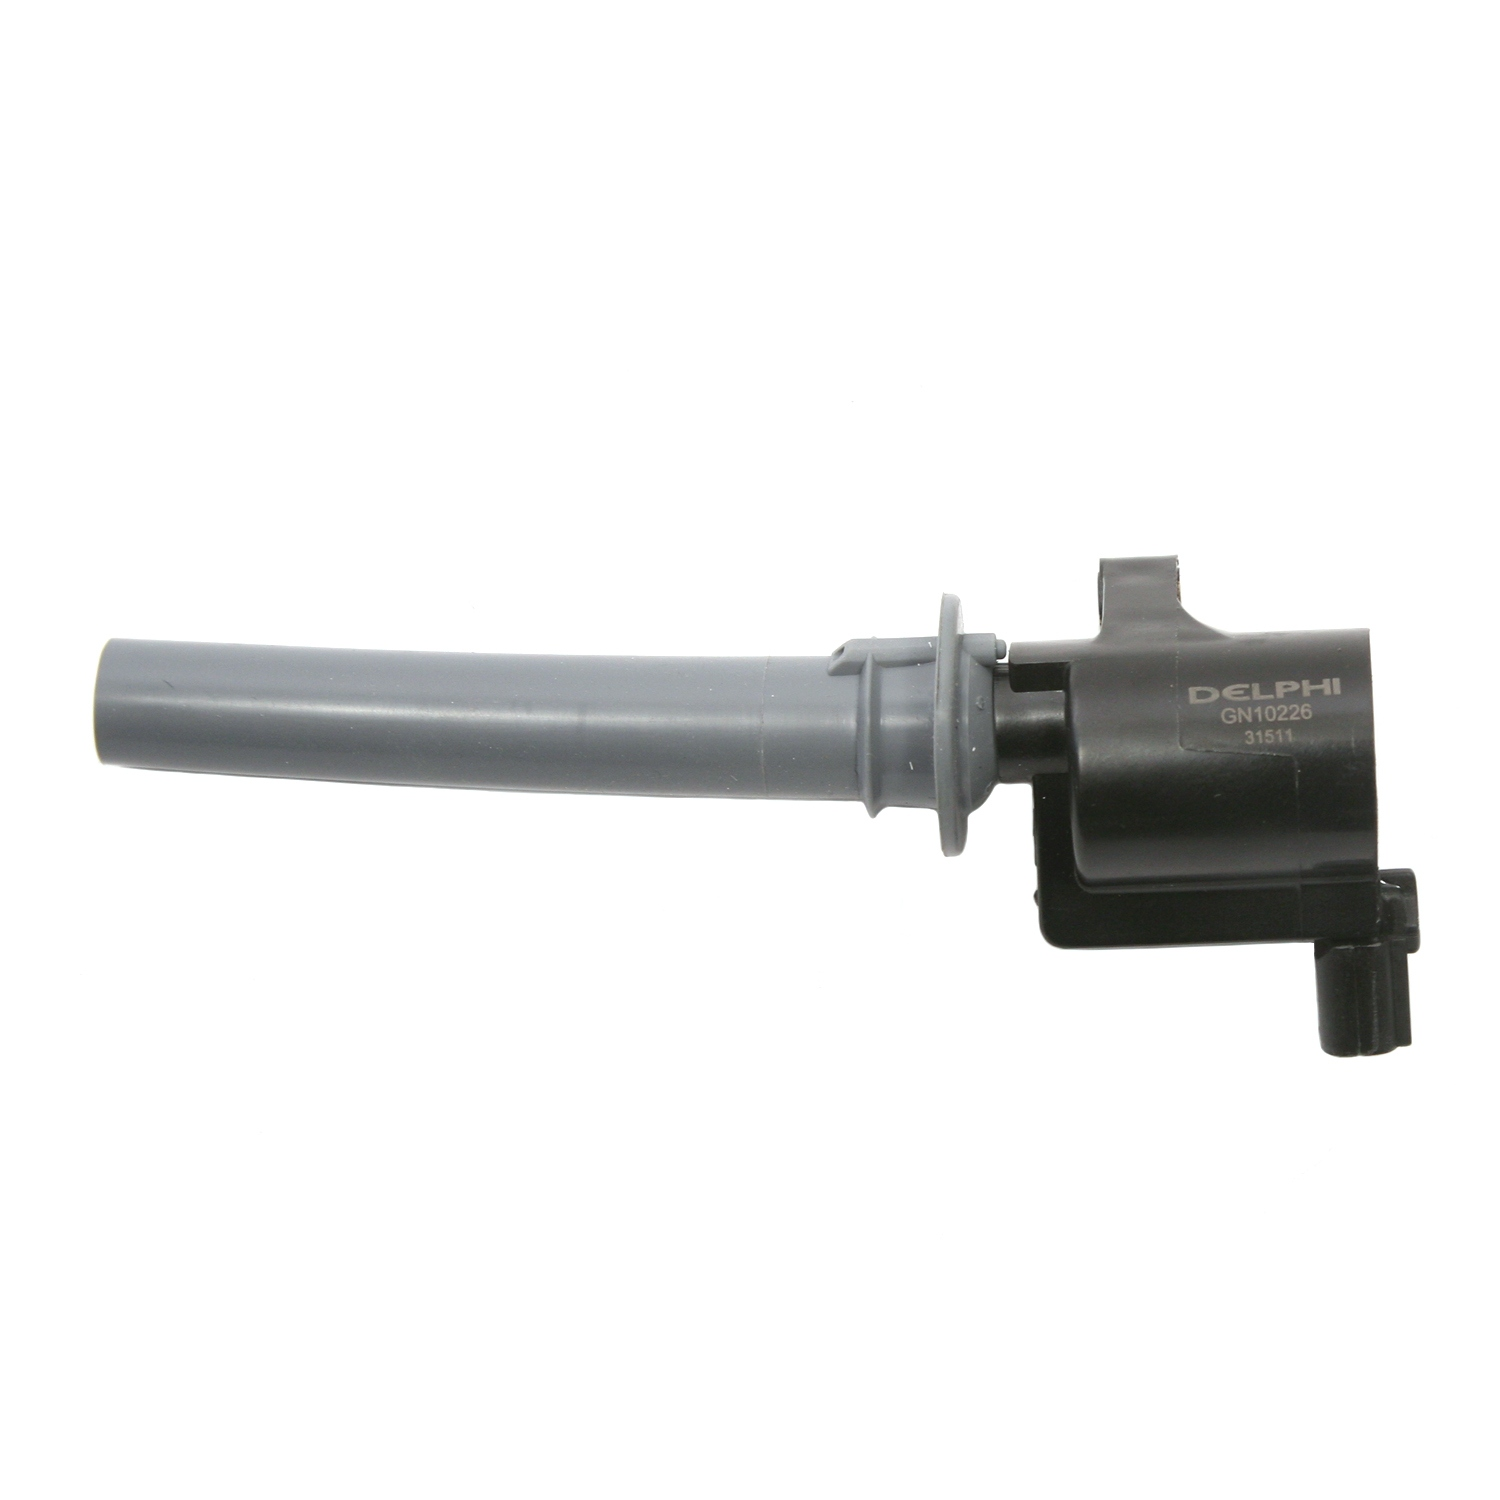 DELPHI - Ignition Coil - DPH GN10226